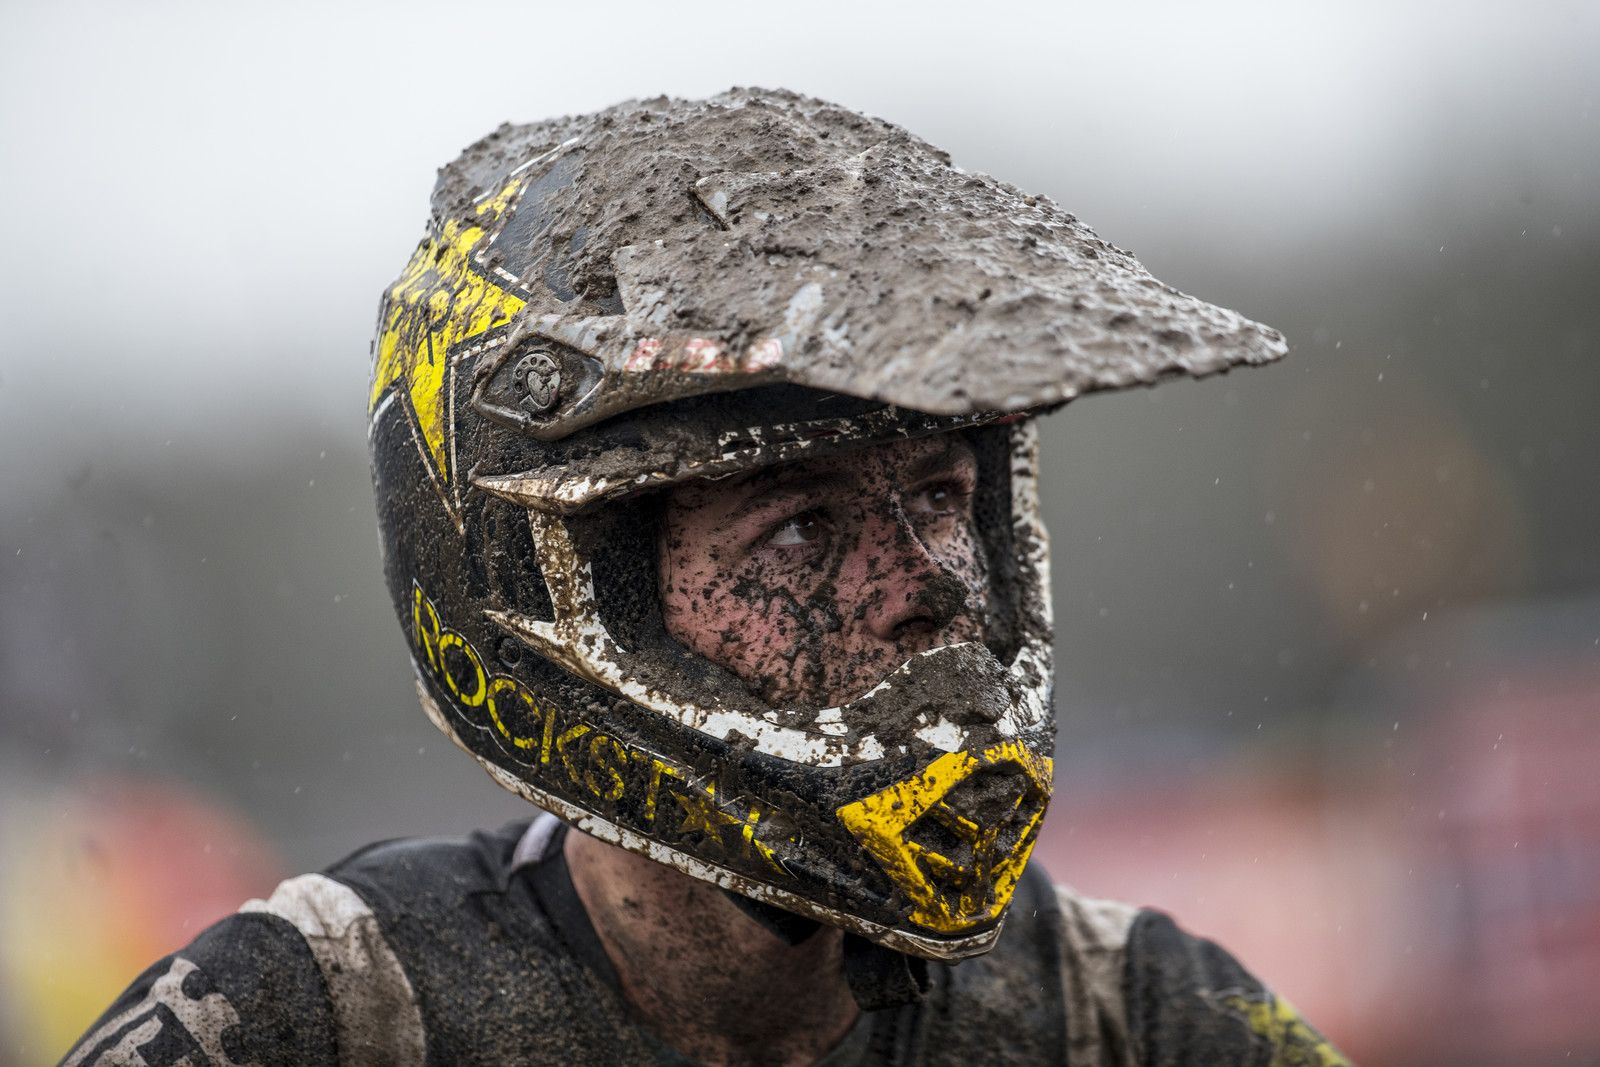 This pretty much sums up the racing at Valkenswaard... Can you say mudfest?